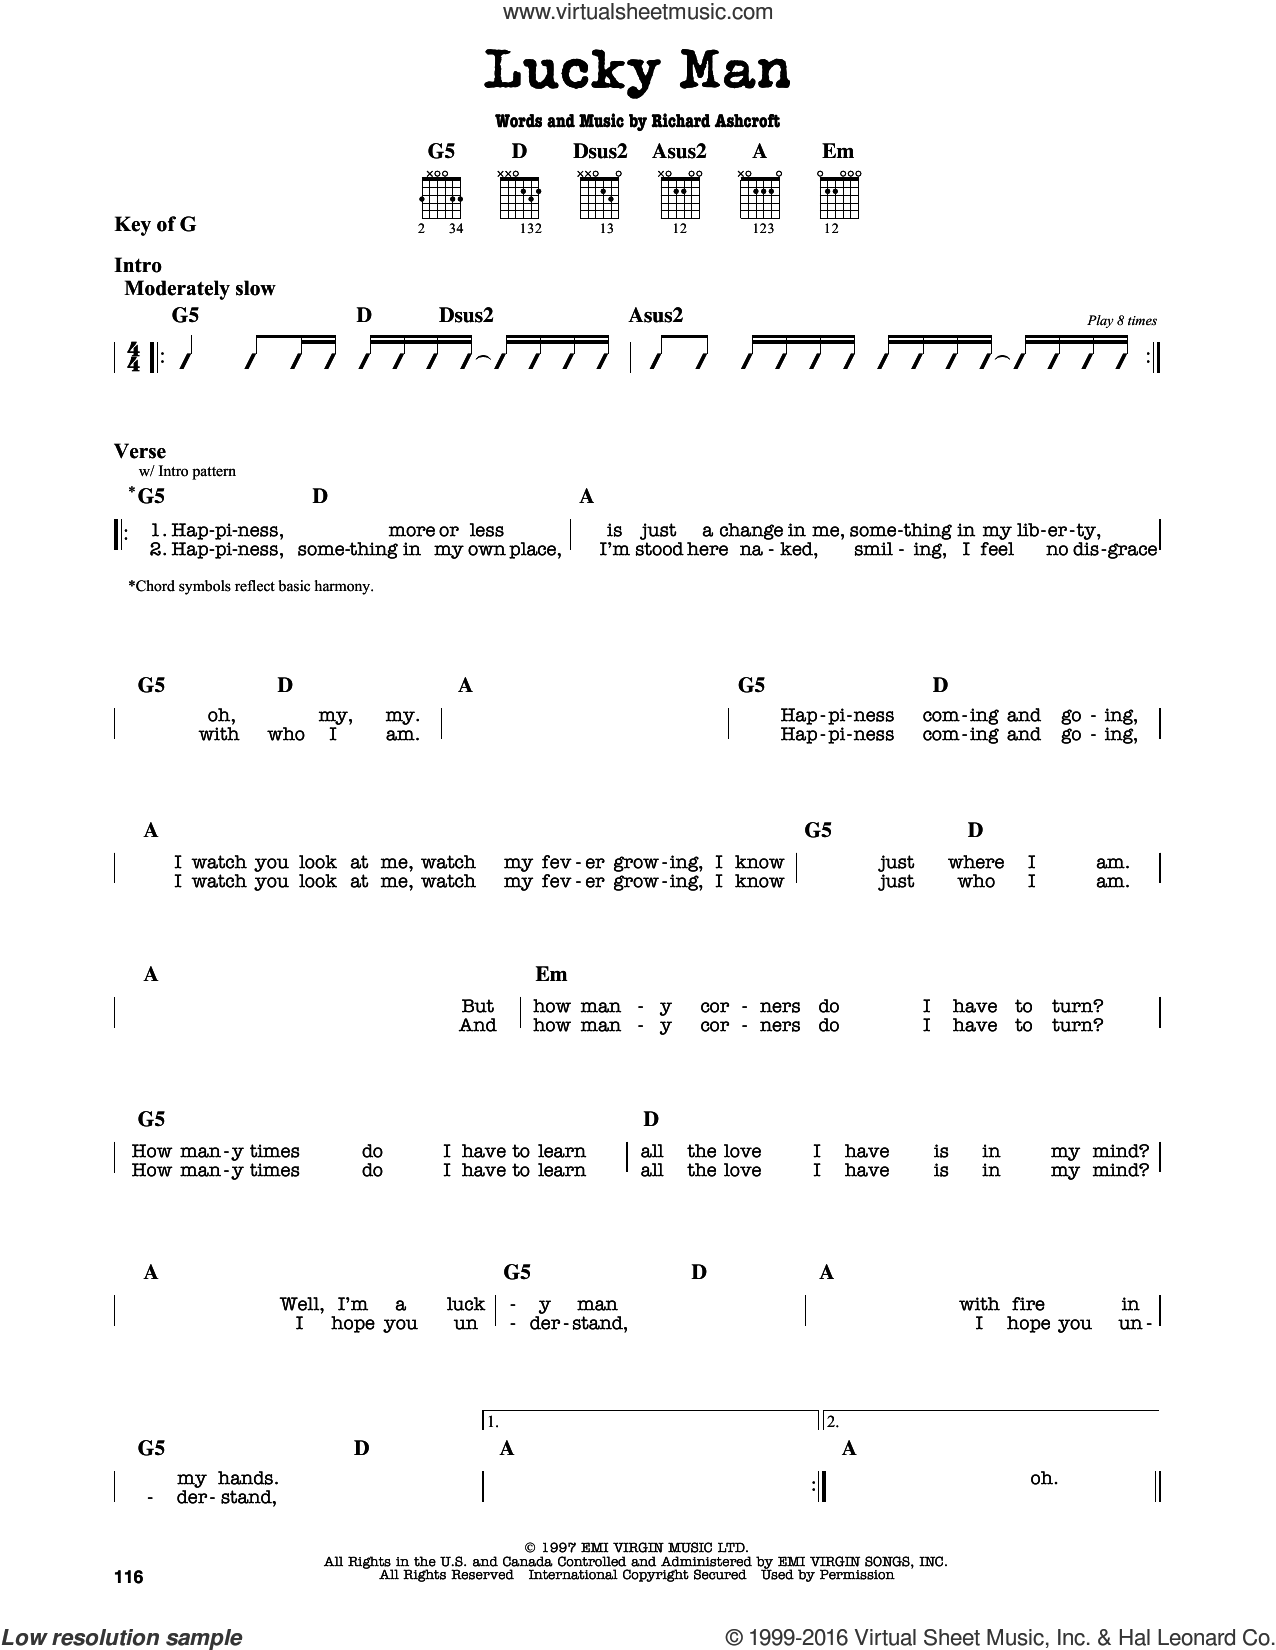 The a team guitar chords choice image guitar chords examples a team guitar chords image collections guitar chords examples verve lucky man sheet music for guitar hexwebz Image collections